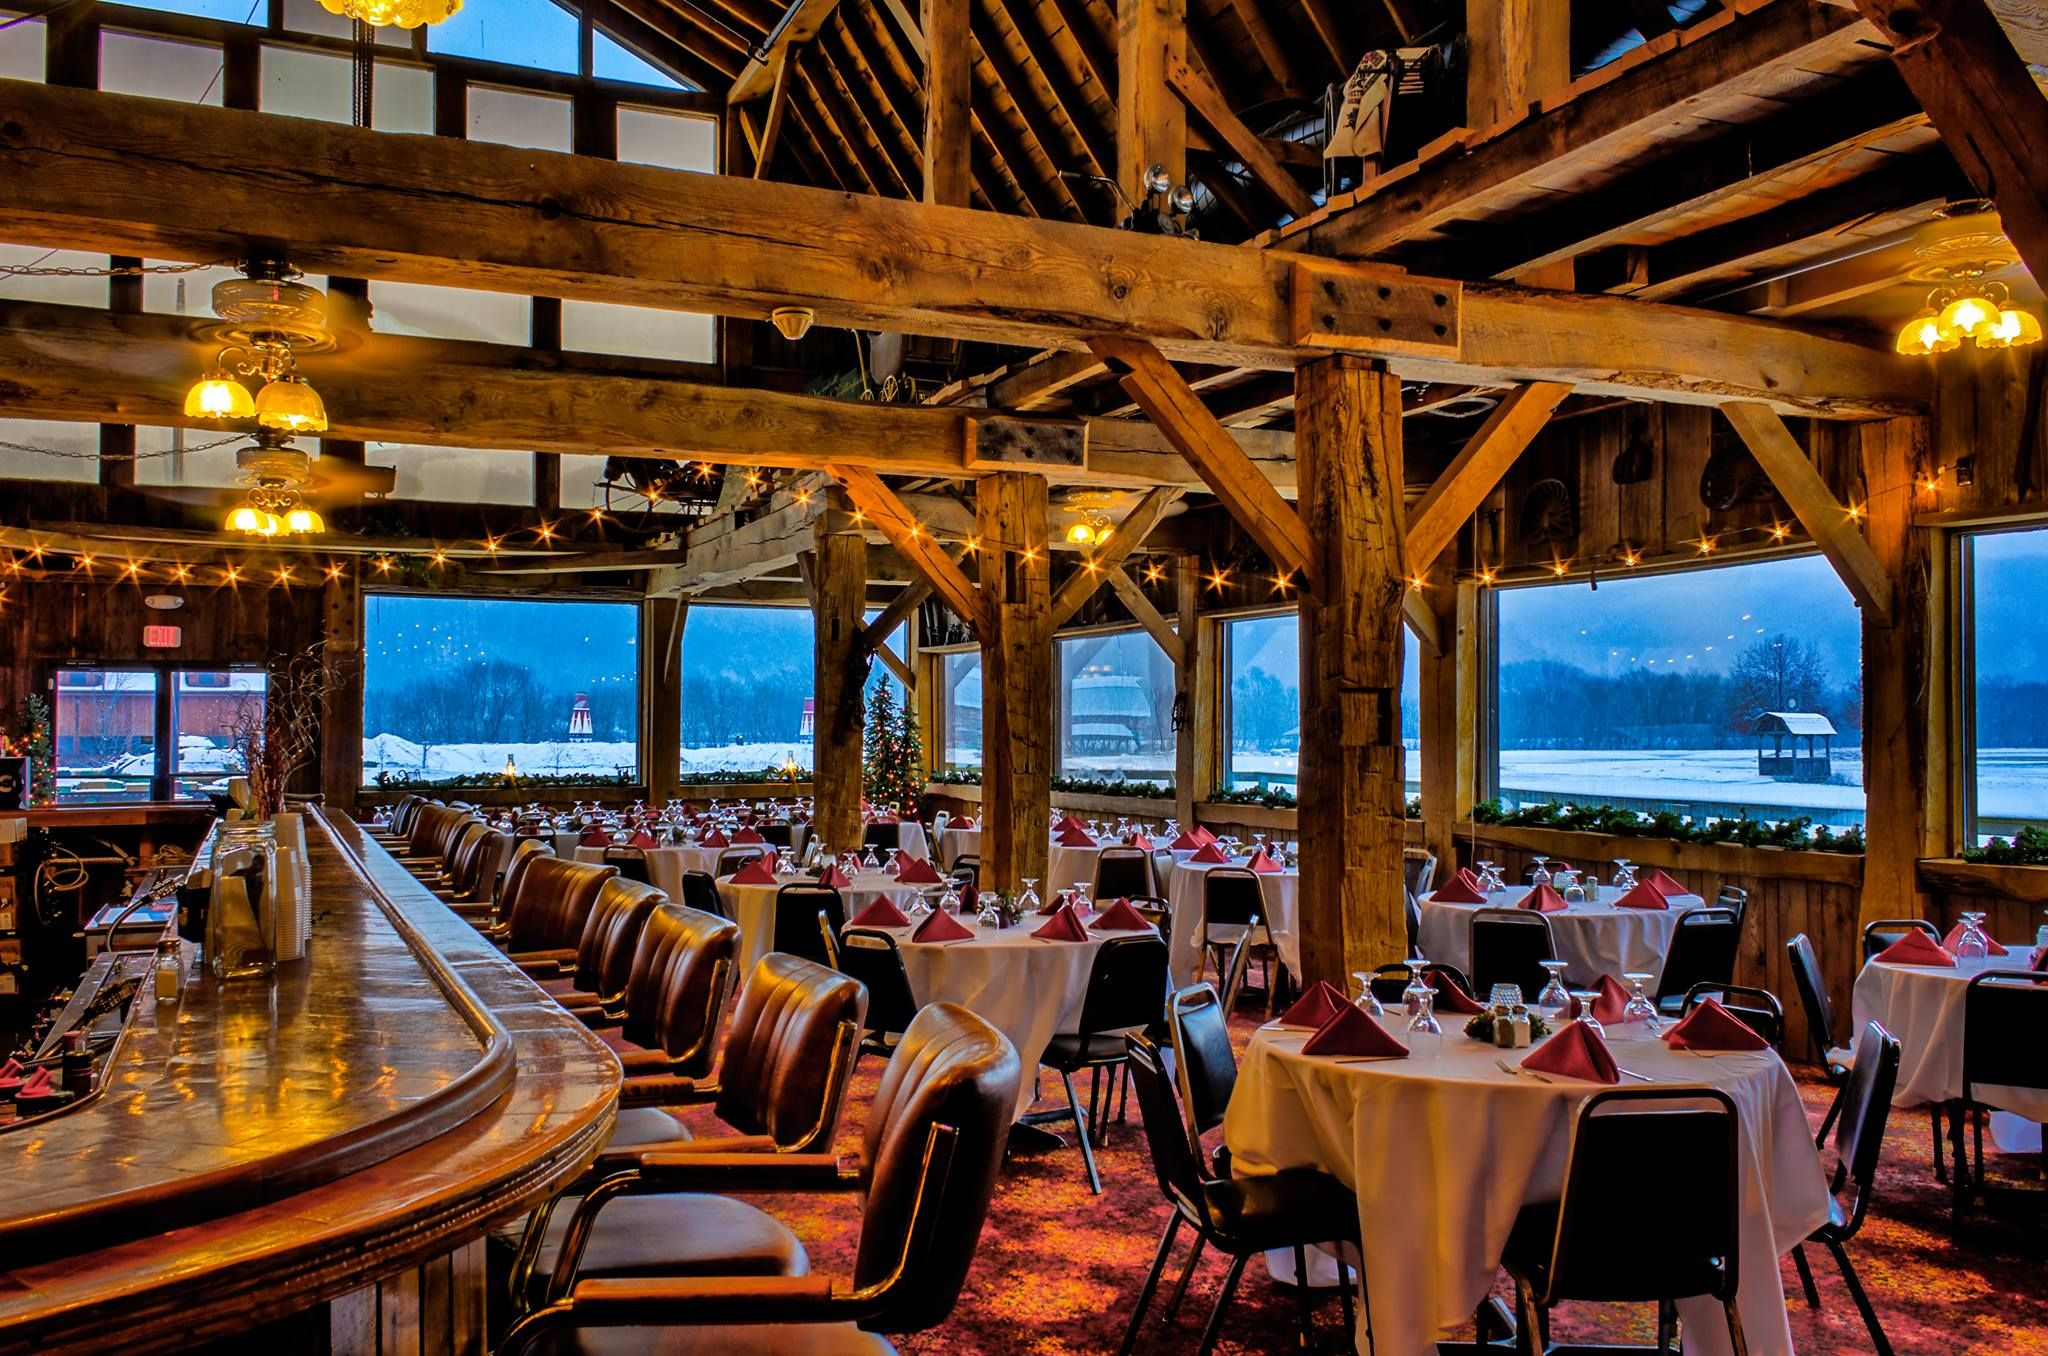 The Barn Restaurant Best Rustic Steakhouse In Wisconsin The Barn Restaurant Wisconsin Restaurants Wisconsin Attractions